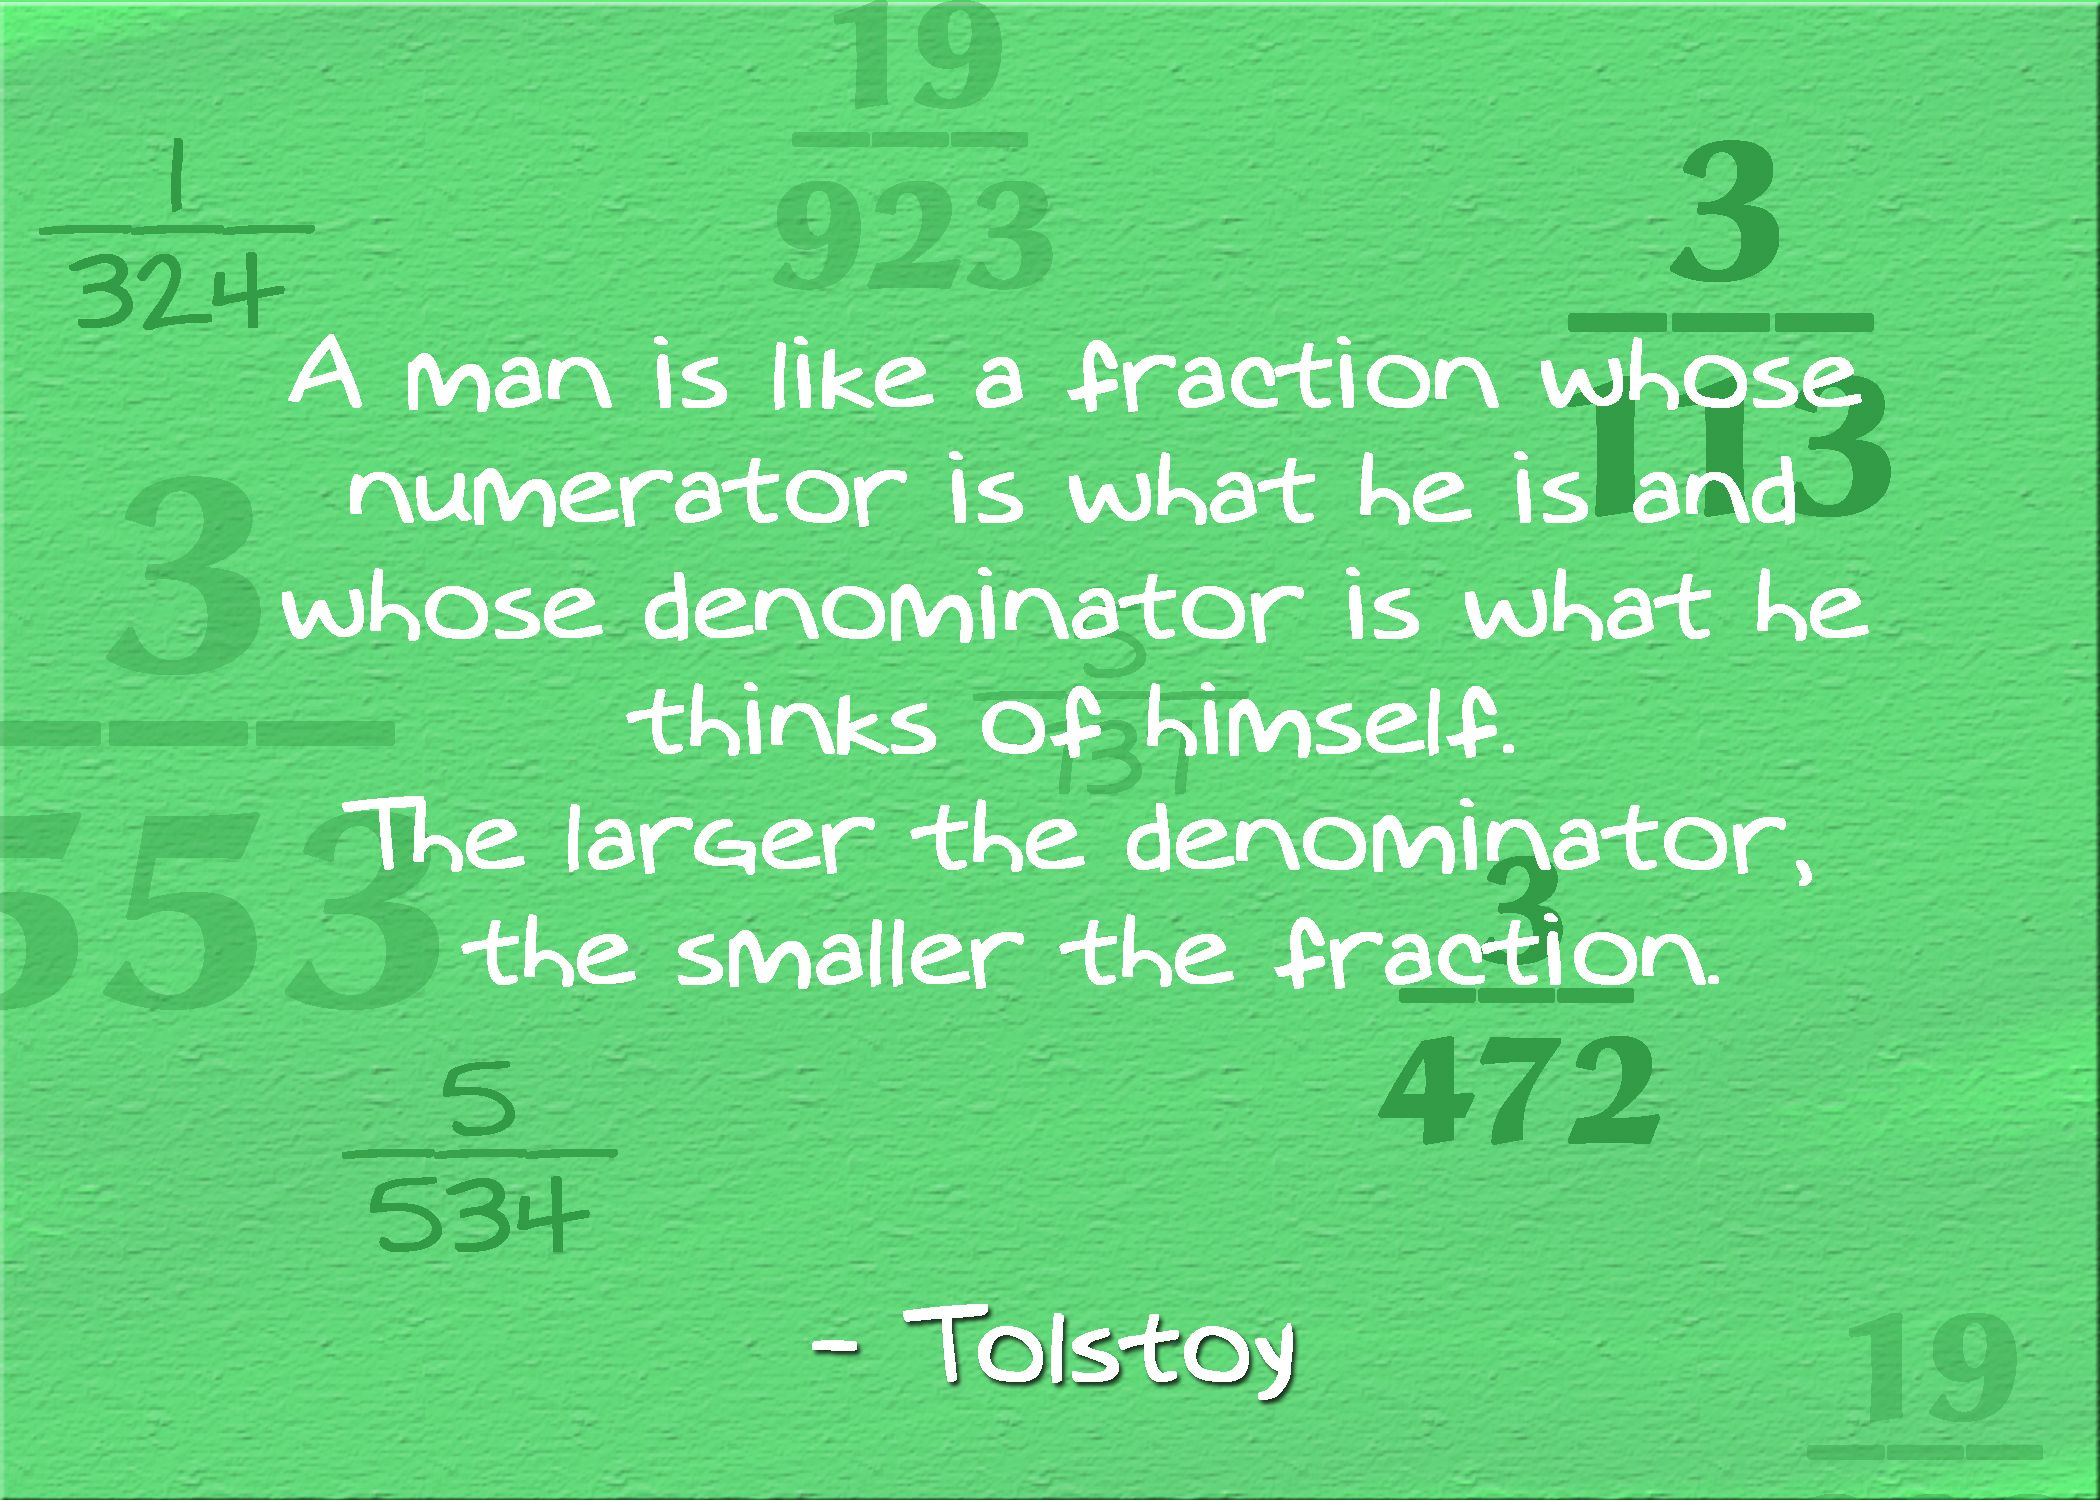 A Man Is Like A Fraction Whose Numerator Is What He Is And Whose Denominator Is What He Thinks Of Himse Inspirational Math Quotes Math Quotes Funny Math Quotes